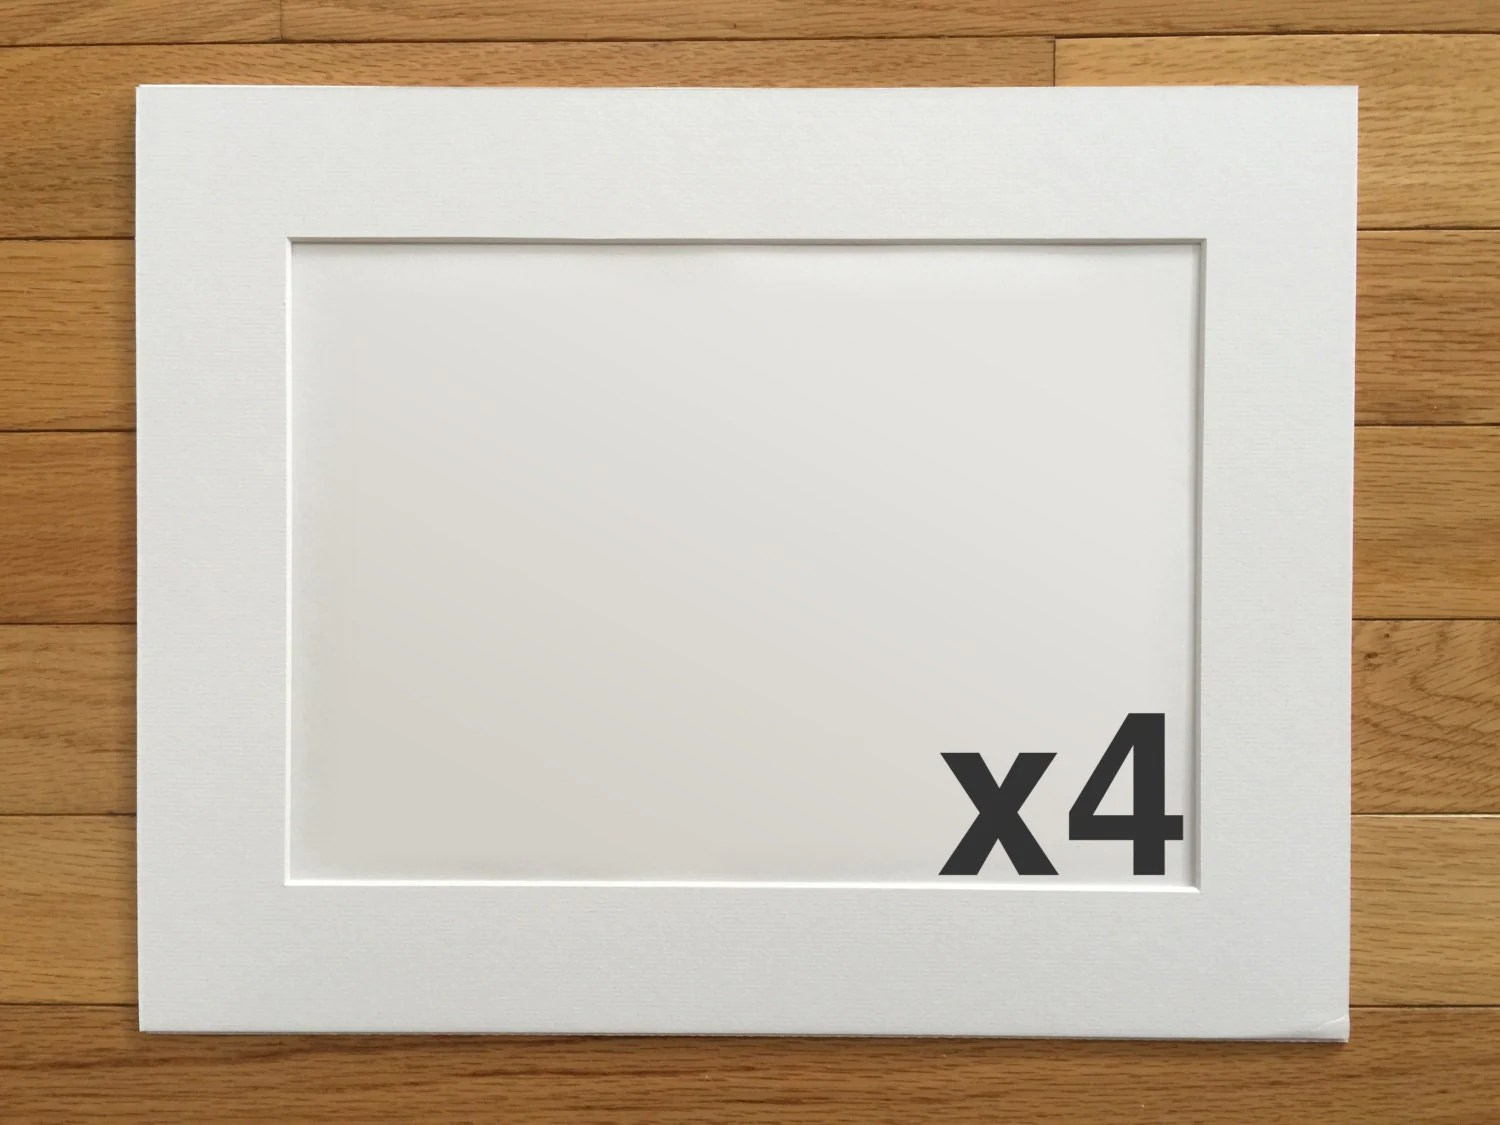 18x24 Picture Frame Walmart